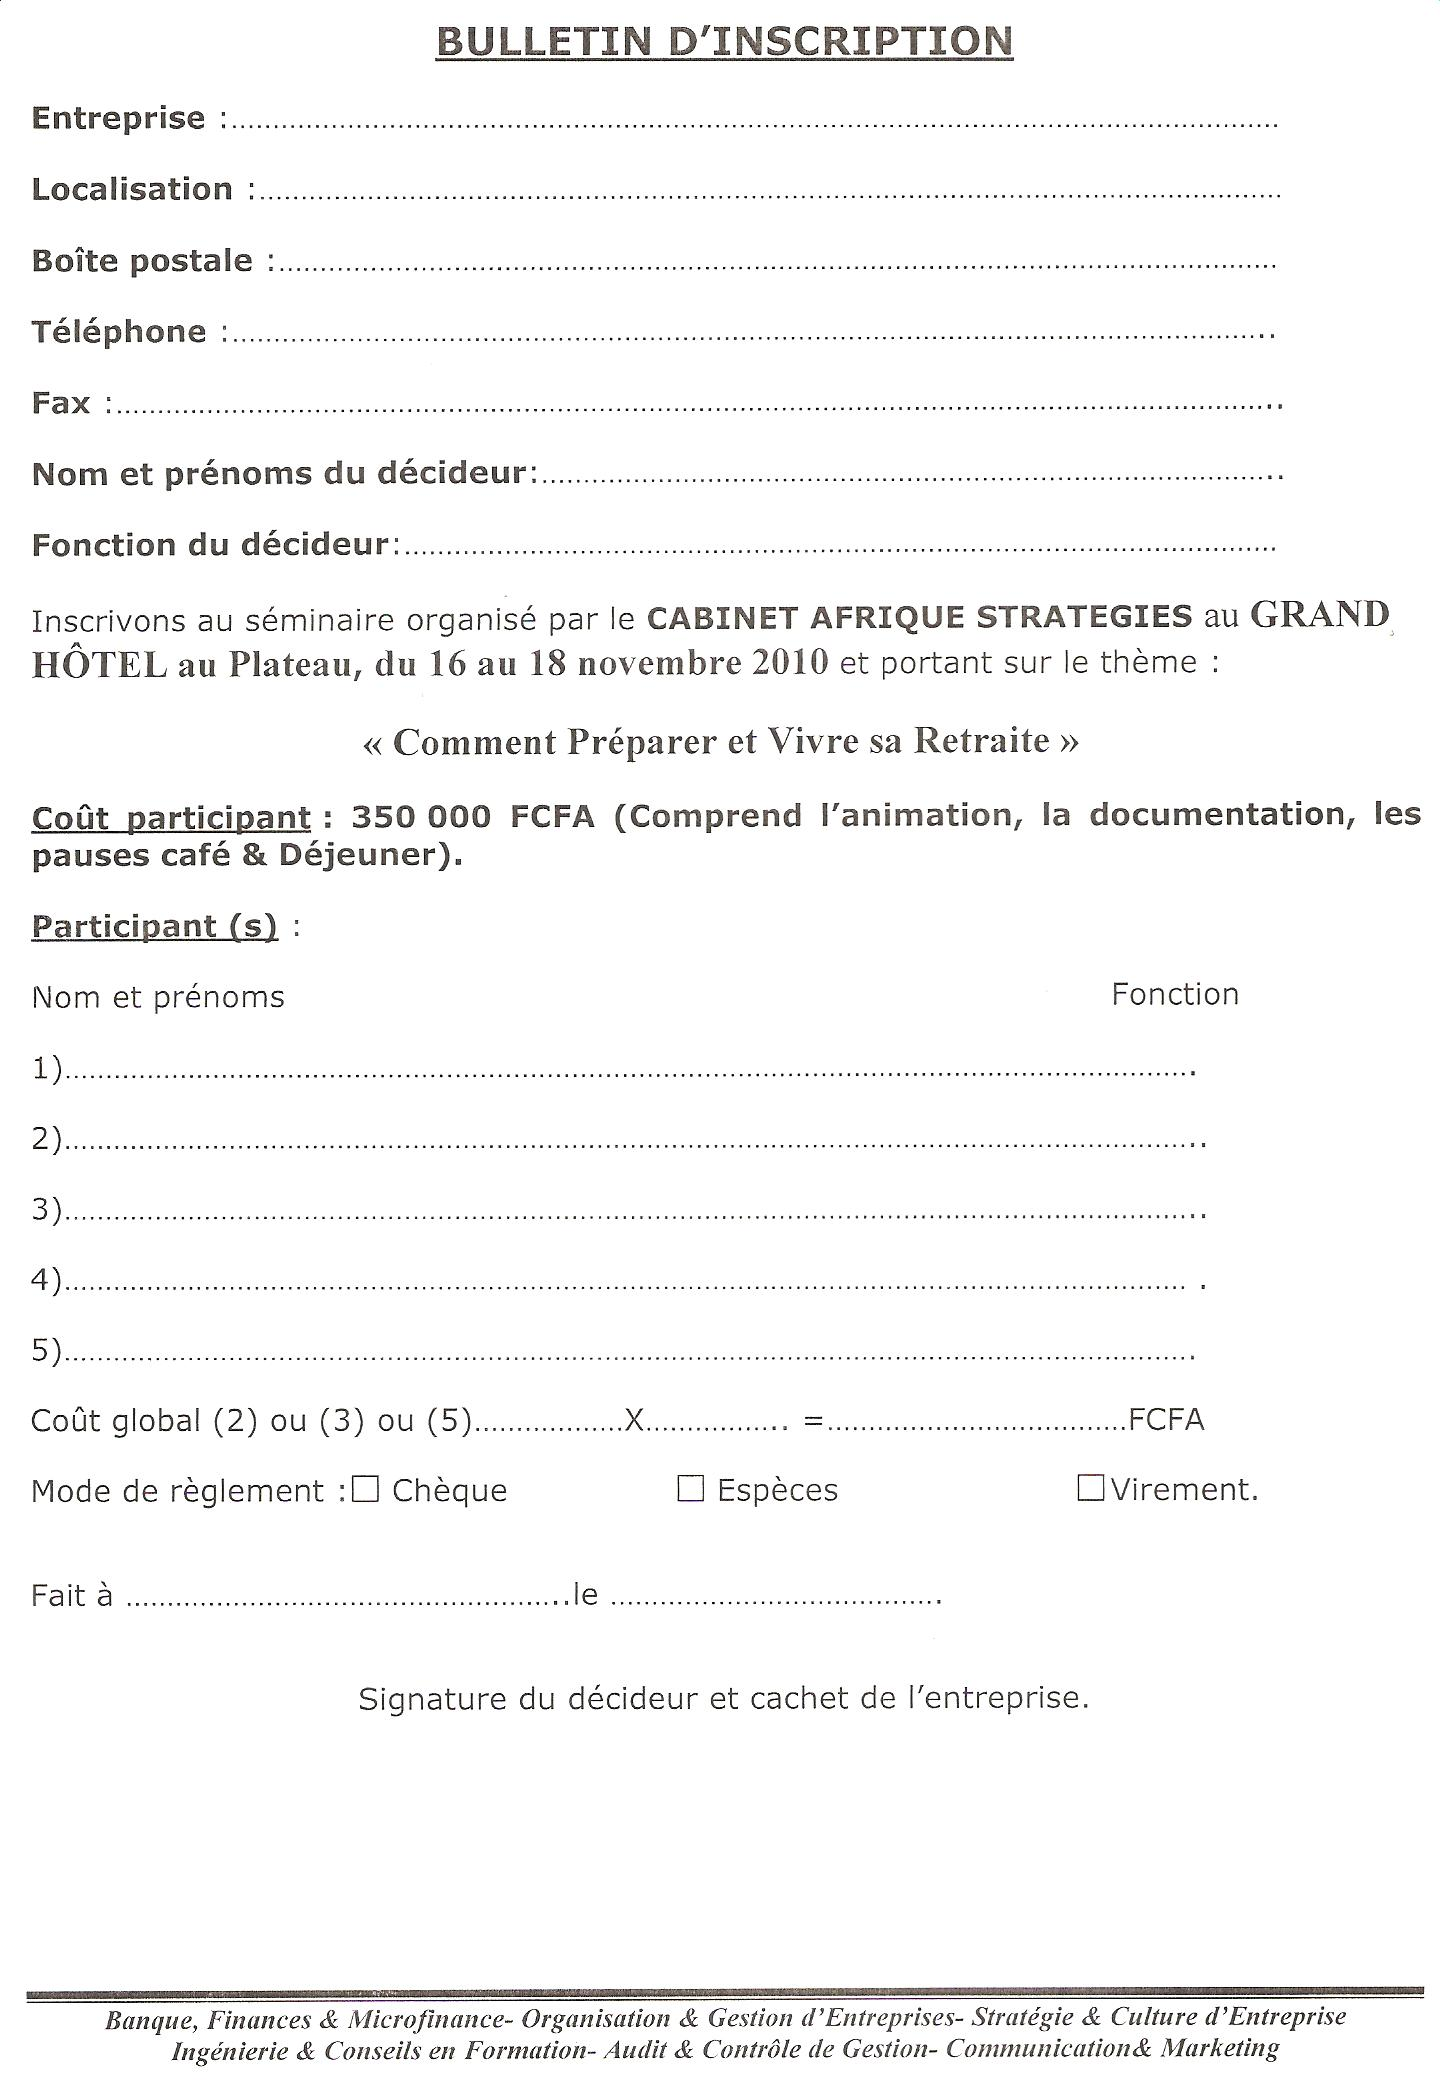 Pdf modele quitus association for Exemple de reglement interieur association